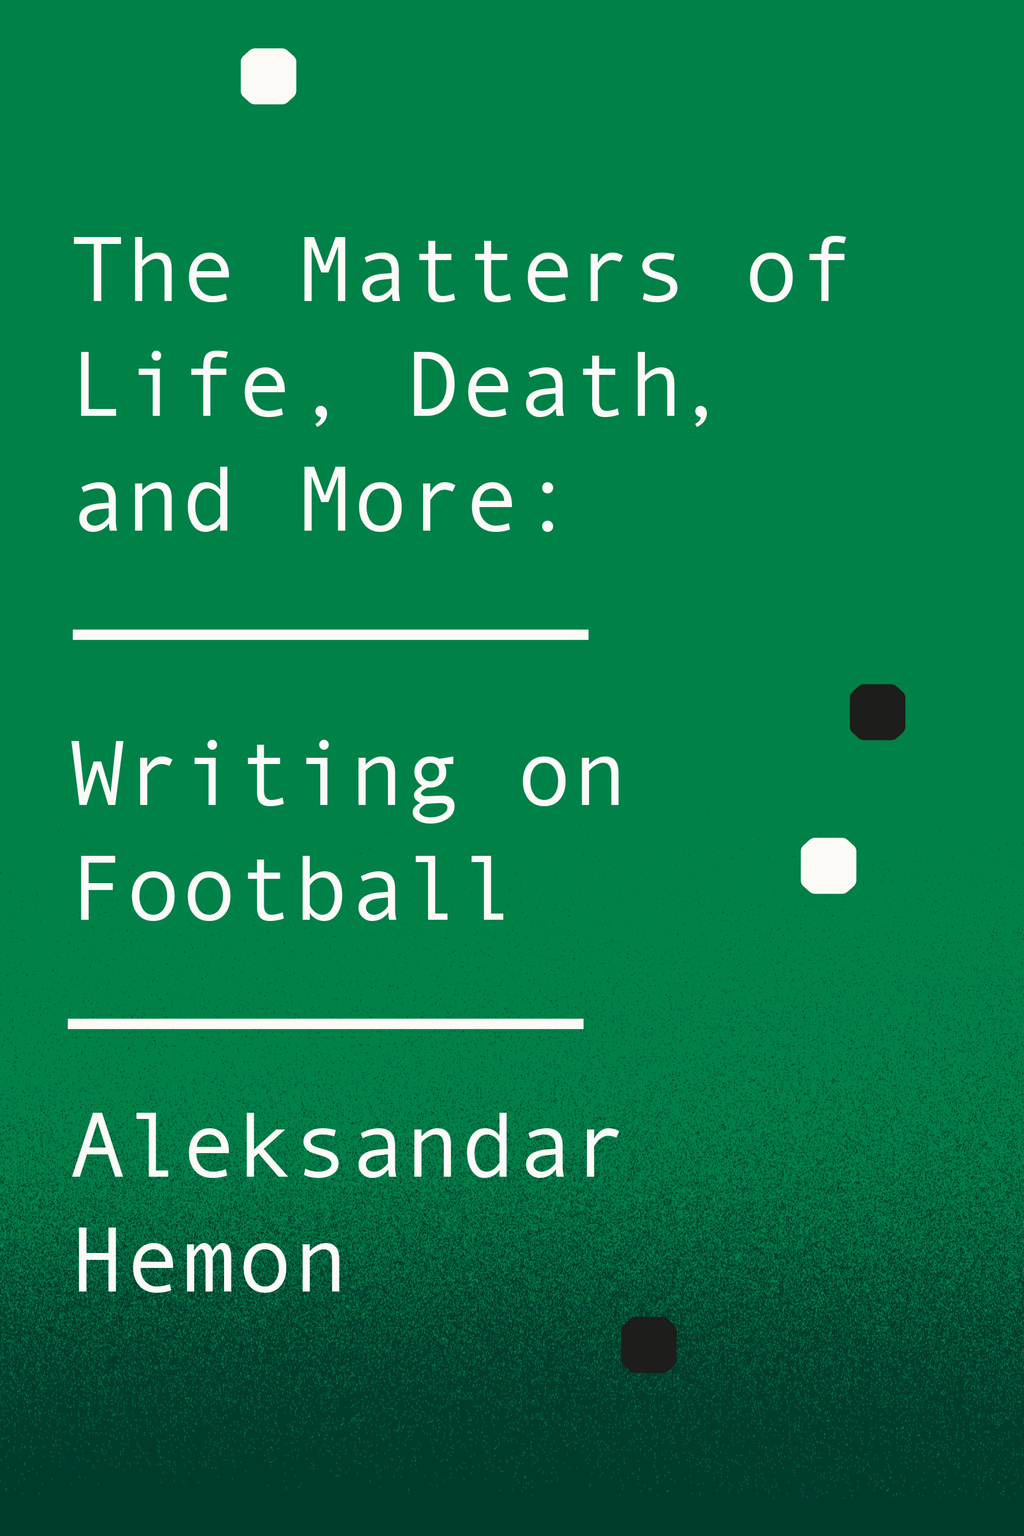 The Matters of Life, Death, and More Writing on Football